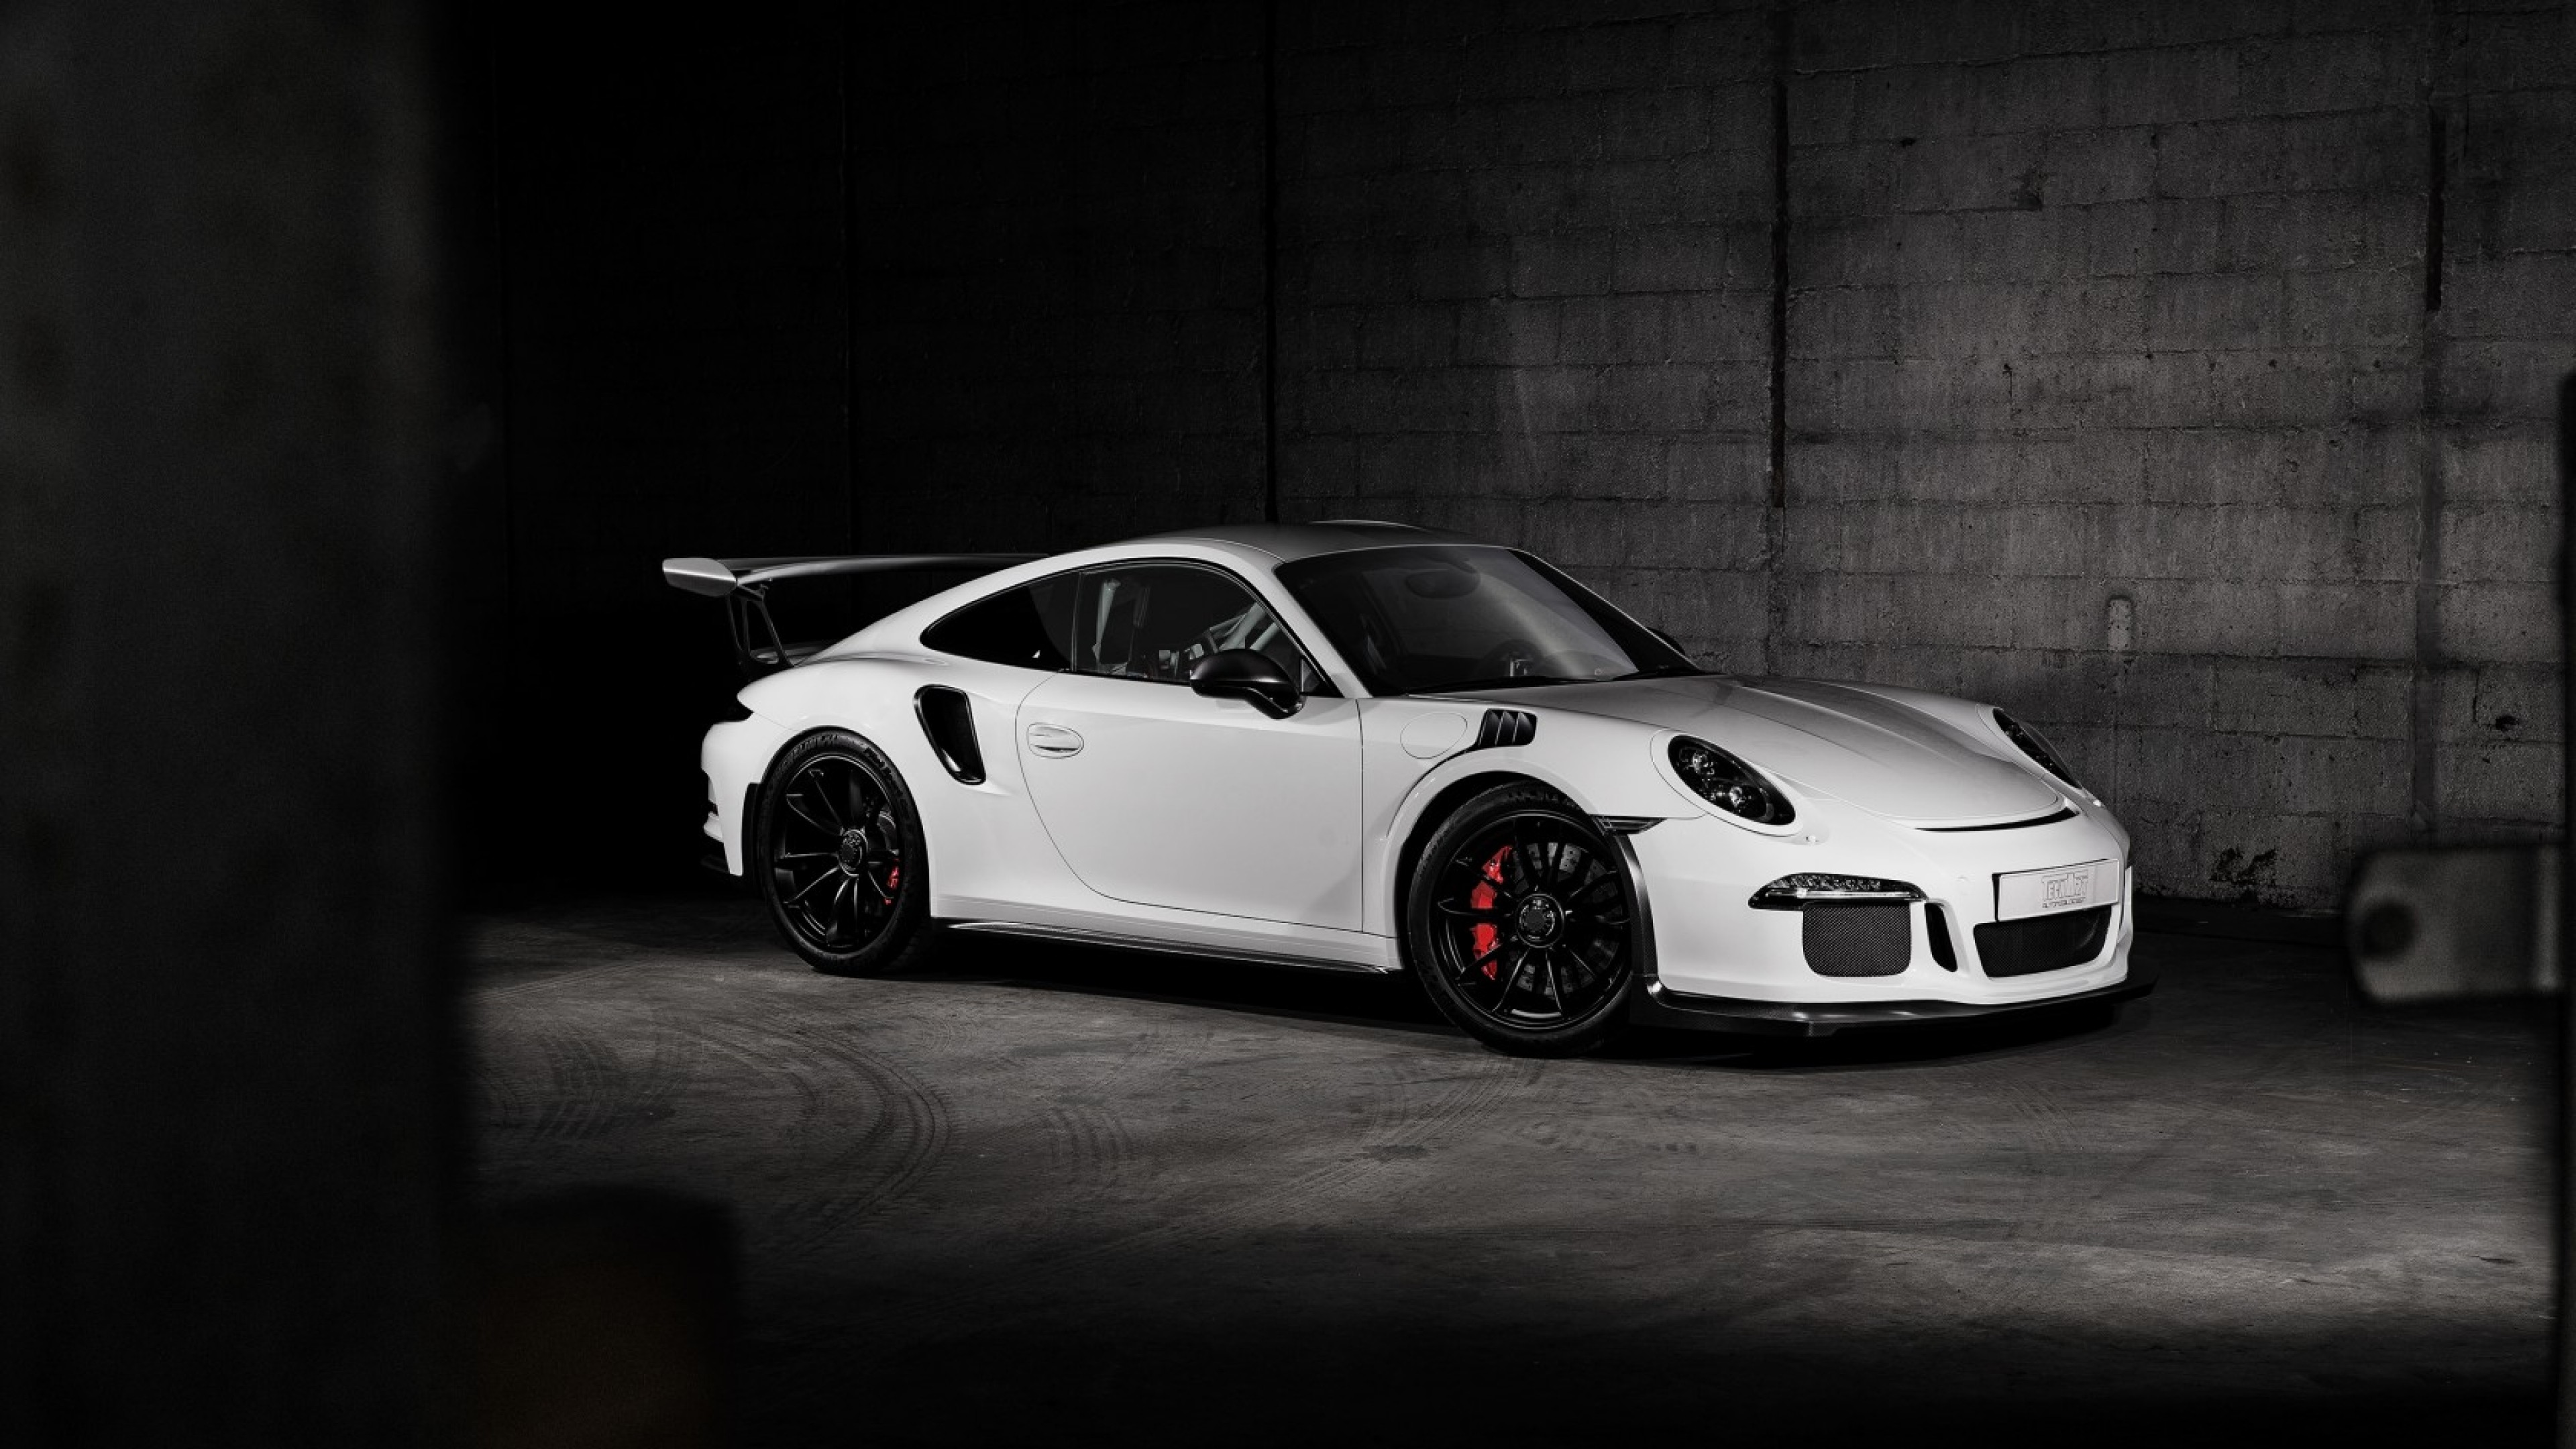 3840x2160 Preview wallpaper porsche, 911, gt3, side view, white